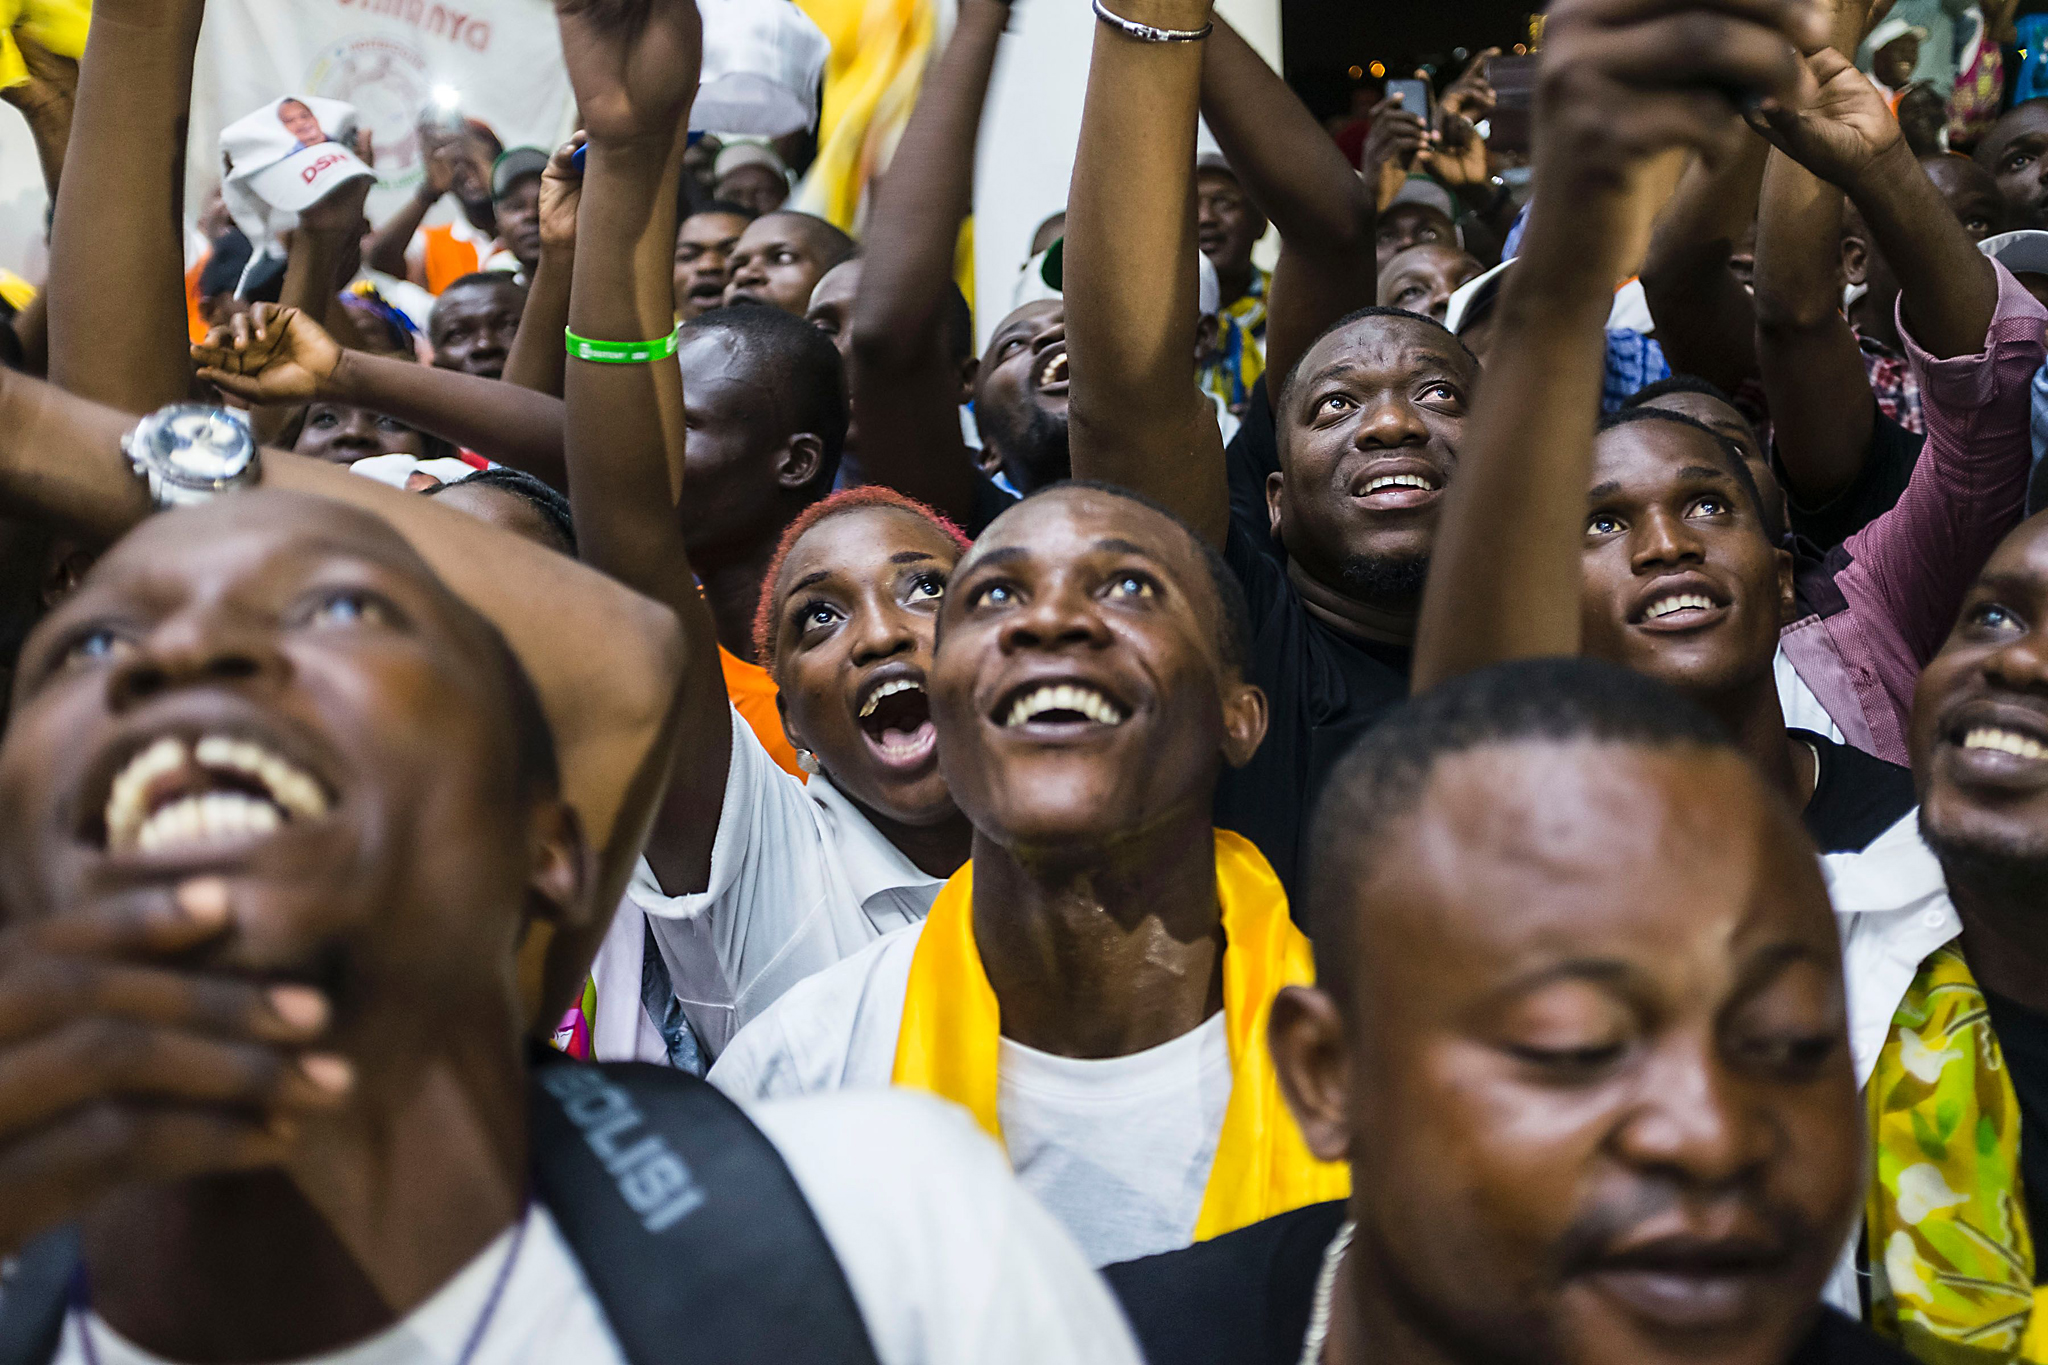 Supporters of newly re-elected...TOPSHOT - Supporters of newly re-elected Congo President Denis Sassou Nguesso celebrate his victory in Brazzaville on March 24, 2016 after the Independent Electoral Commission declared him the winner. Nguesso extended his 32 years in power winning elections in the first round with 60 percent of the vote, the interior minister said on March 24. / AFP PHOTO / Eduardo SoterasEDUARDO SOTERAS/AFP/Getty Images